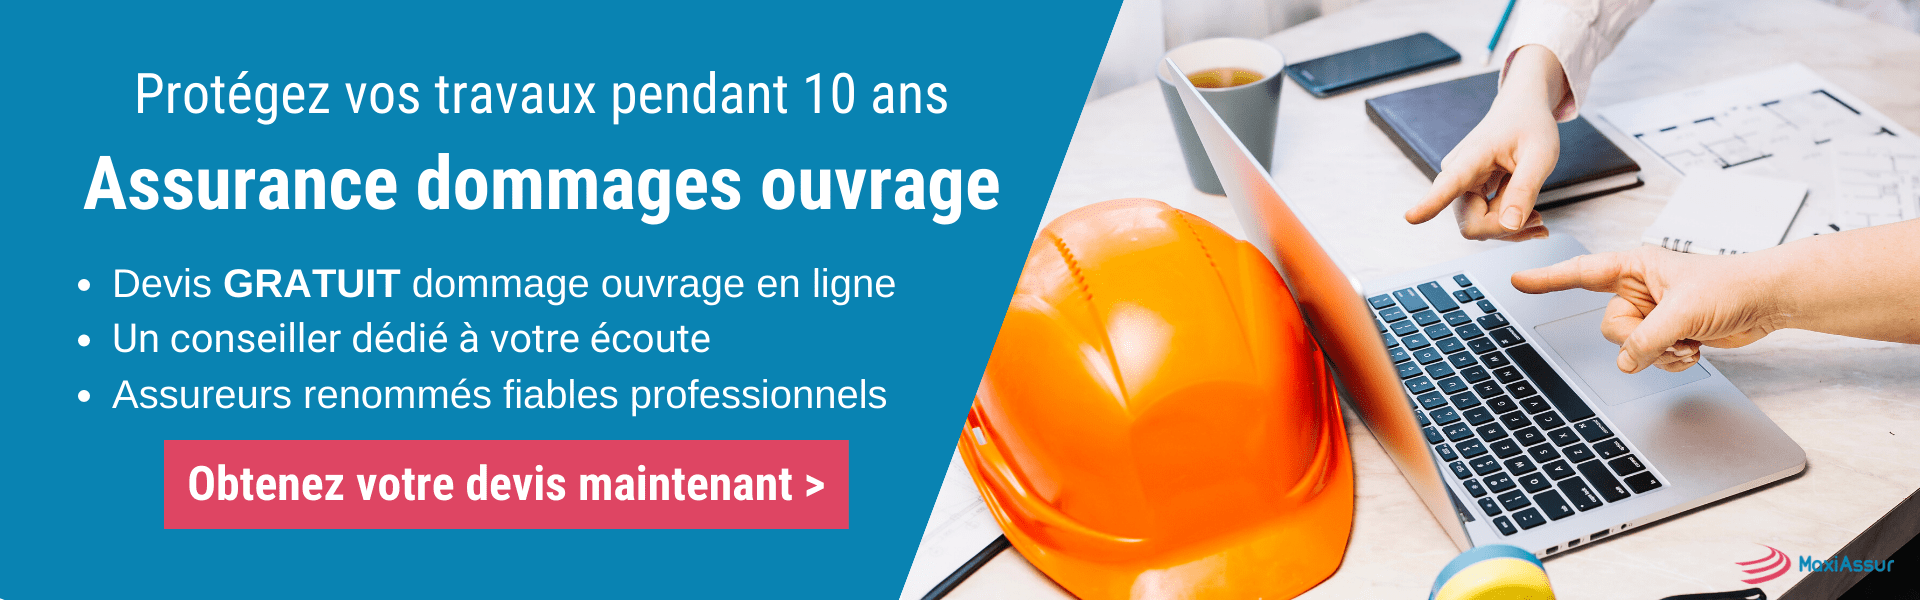 Assurance Dommages Ouvrage travaux